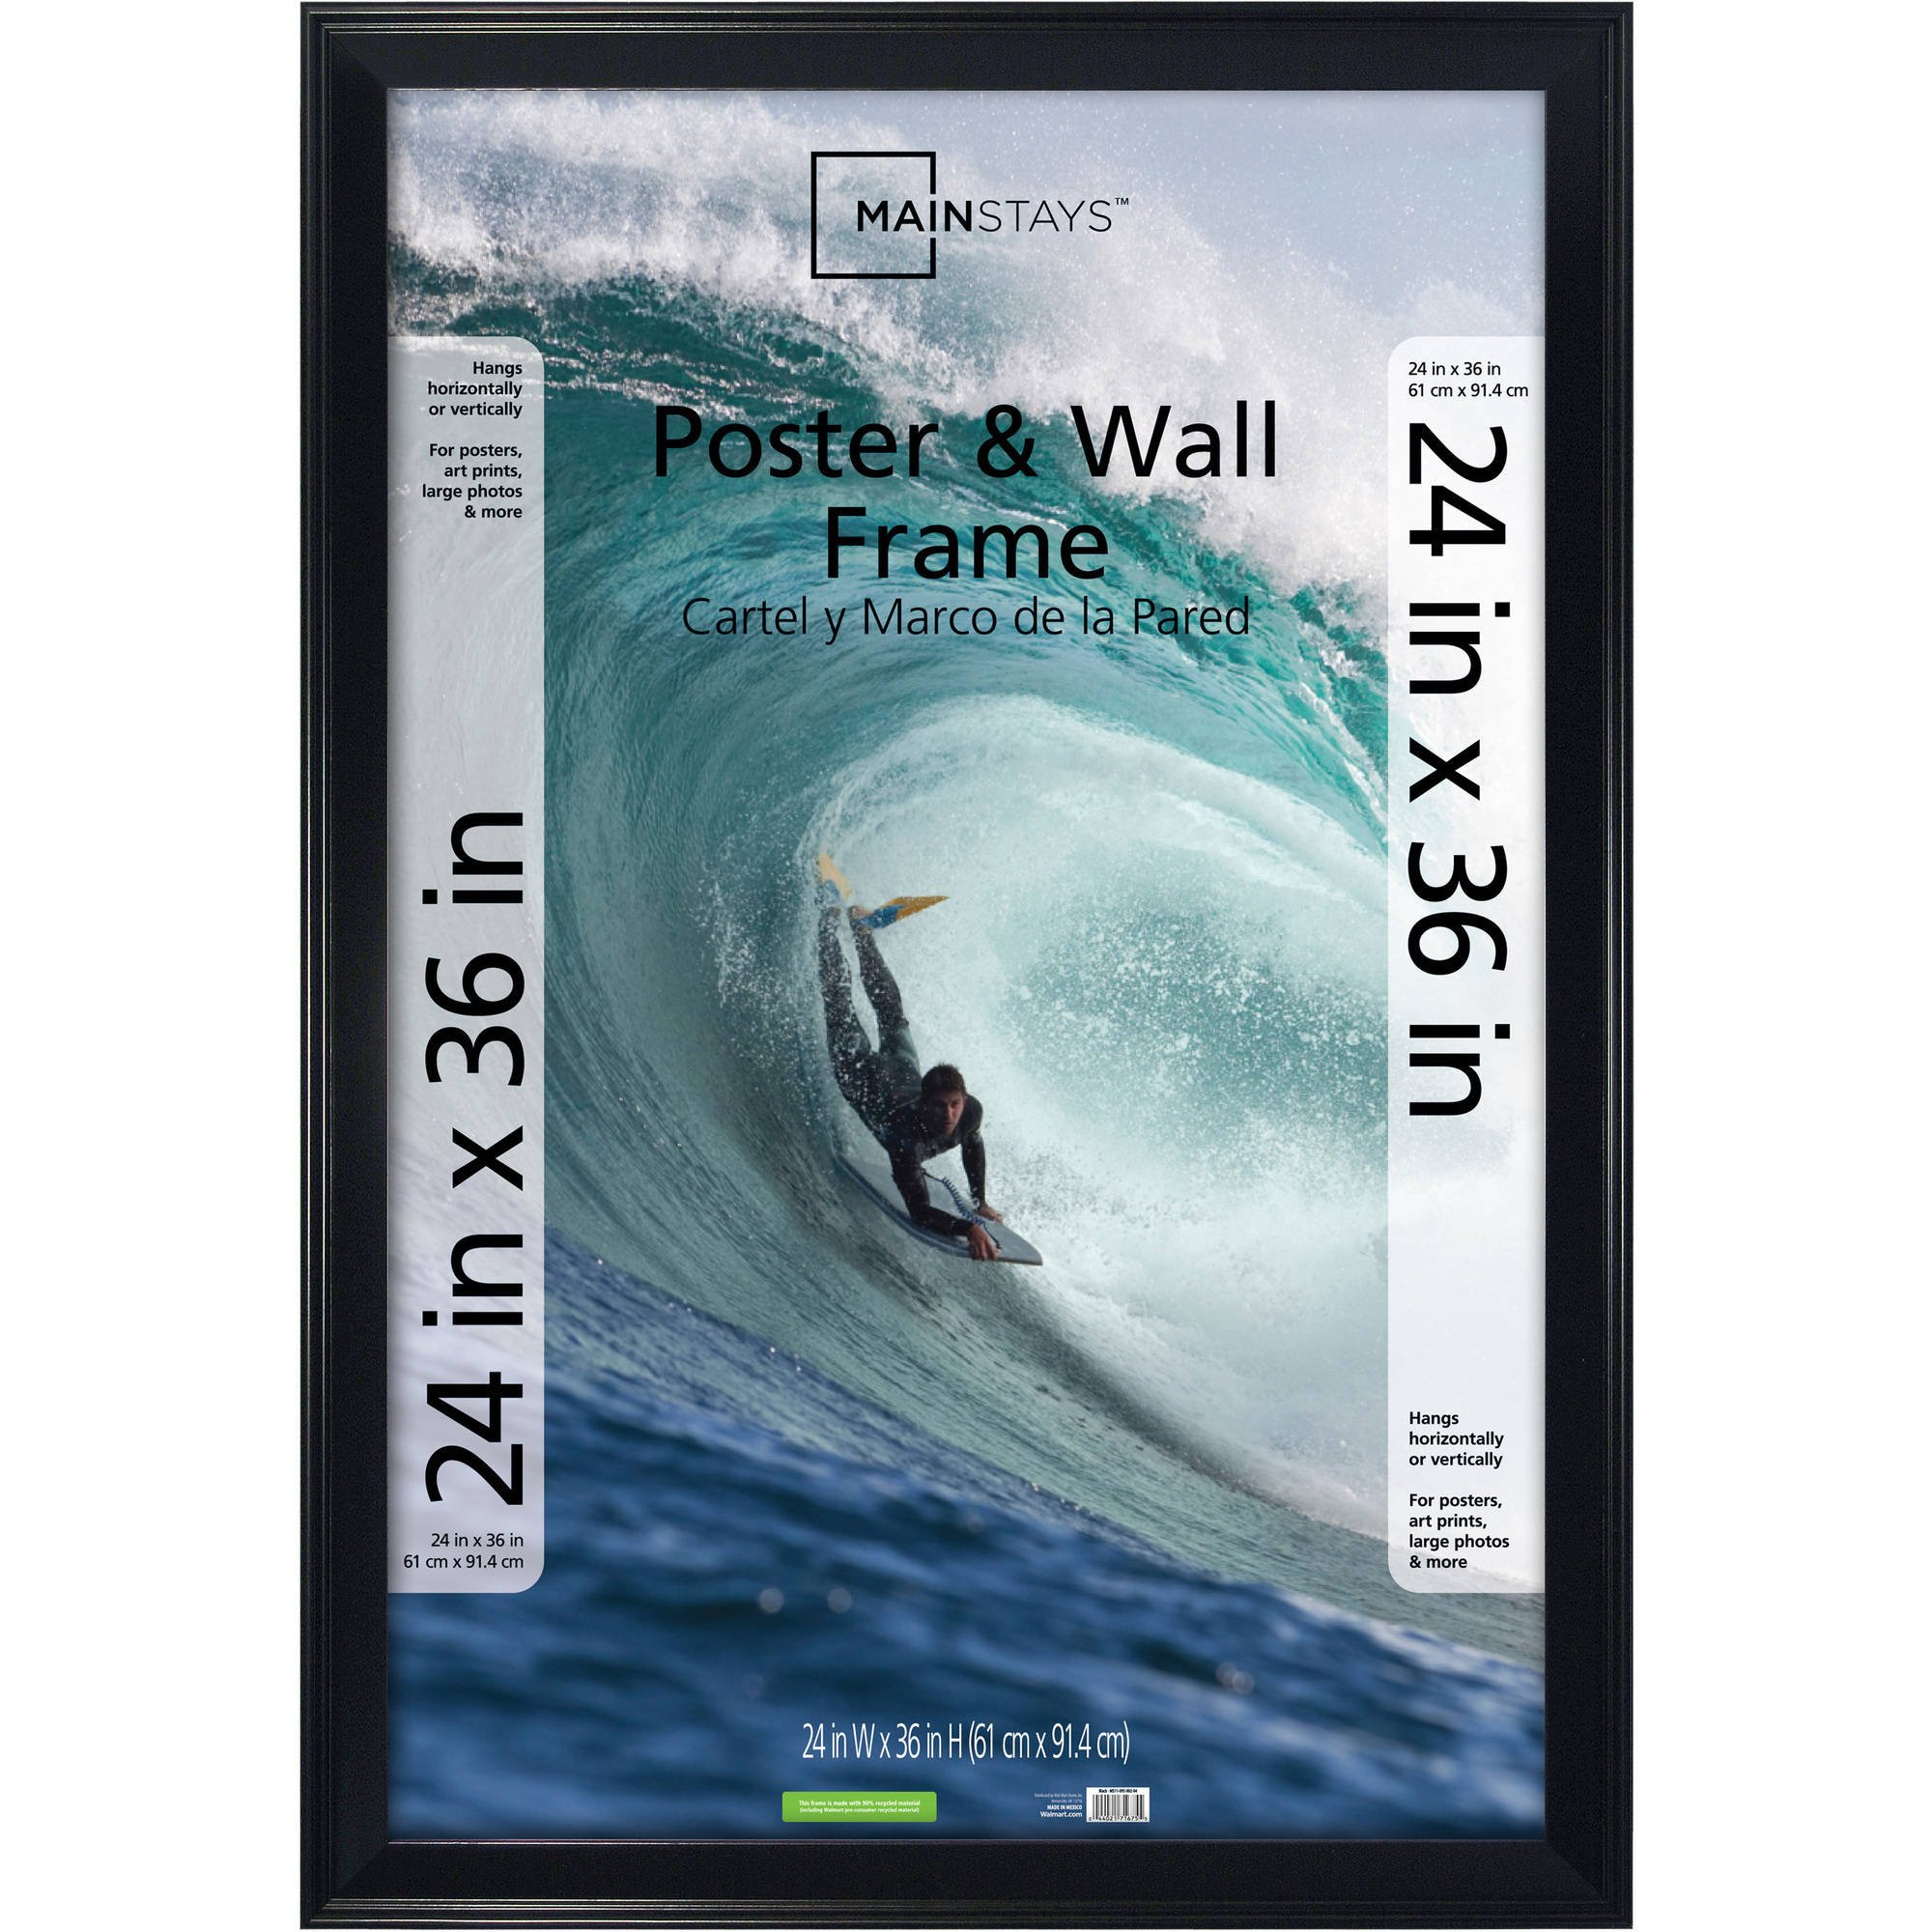 Classic Mainstays Decor 24x36 Casual Poster & Picture Frame, Black (4) by Classic Mainstays (Image #1)